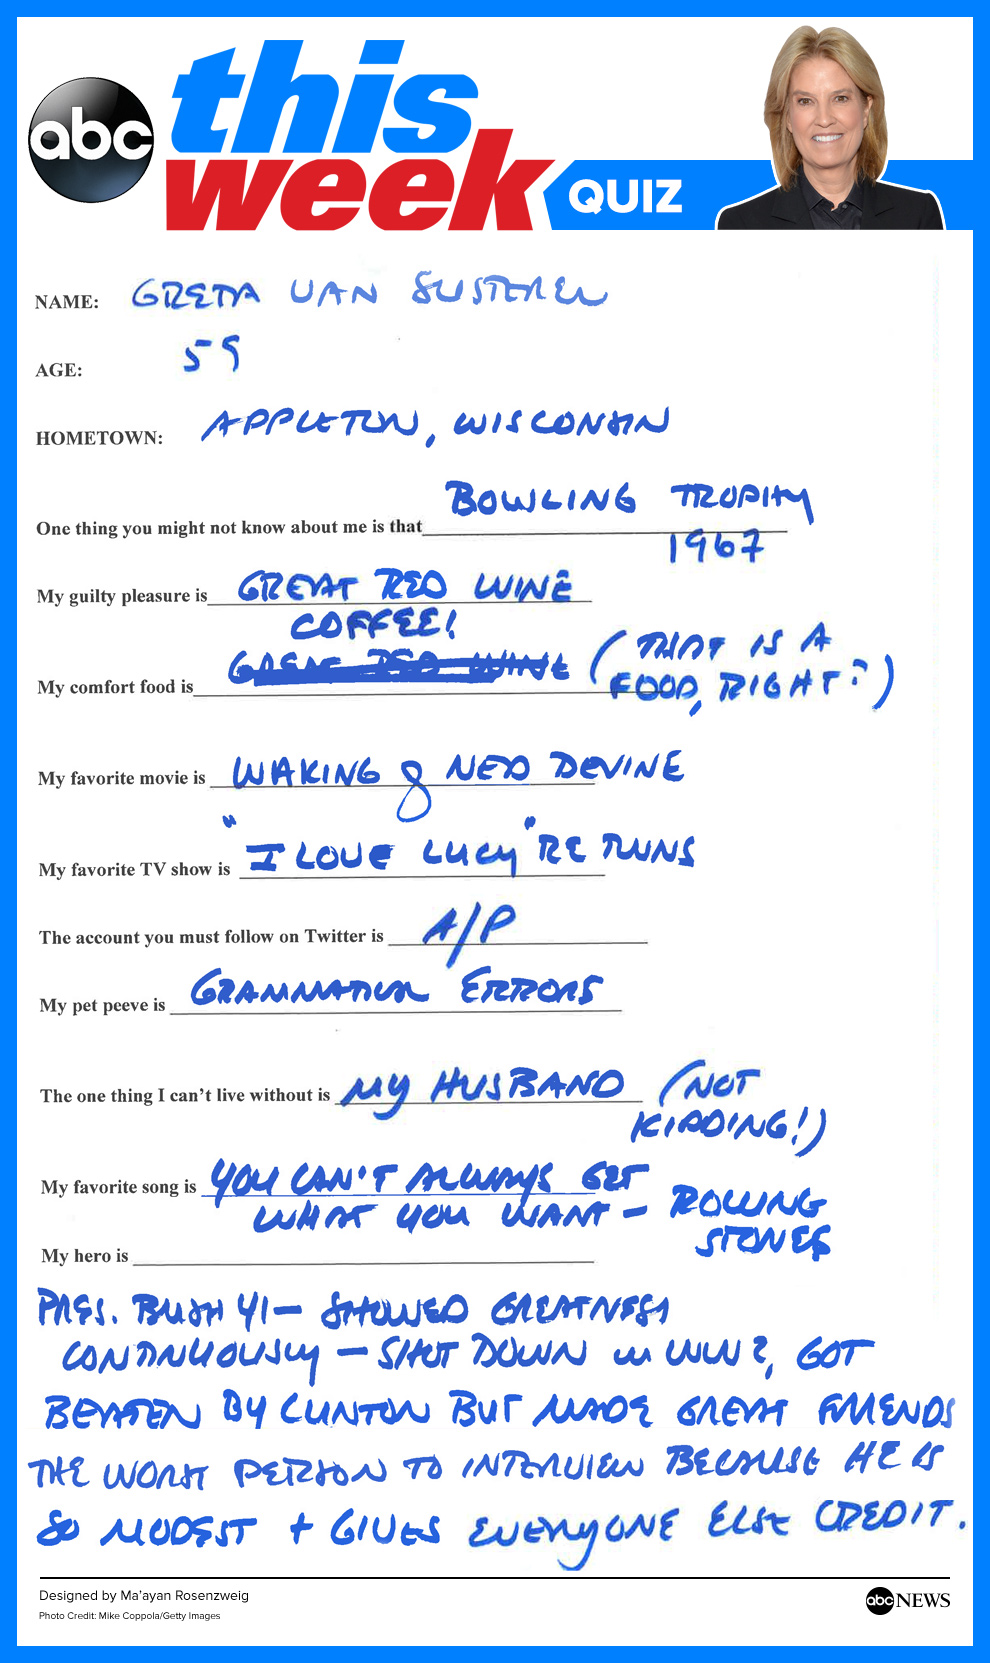 greta van susteren personal trivia questions and answers abc news see her handwritten answers below and be sure to tweet us thisweekabc and tell us who you d like to be our next participant